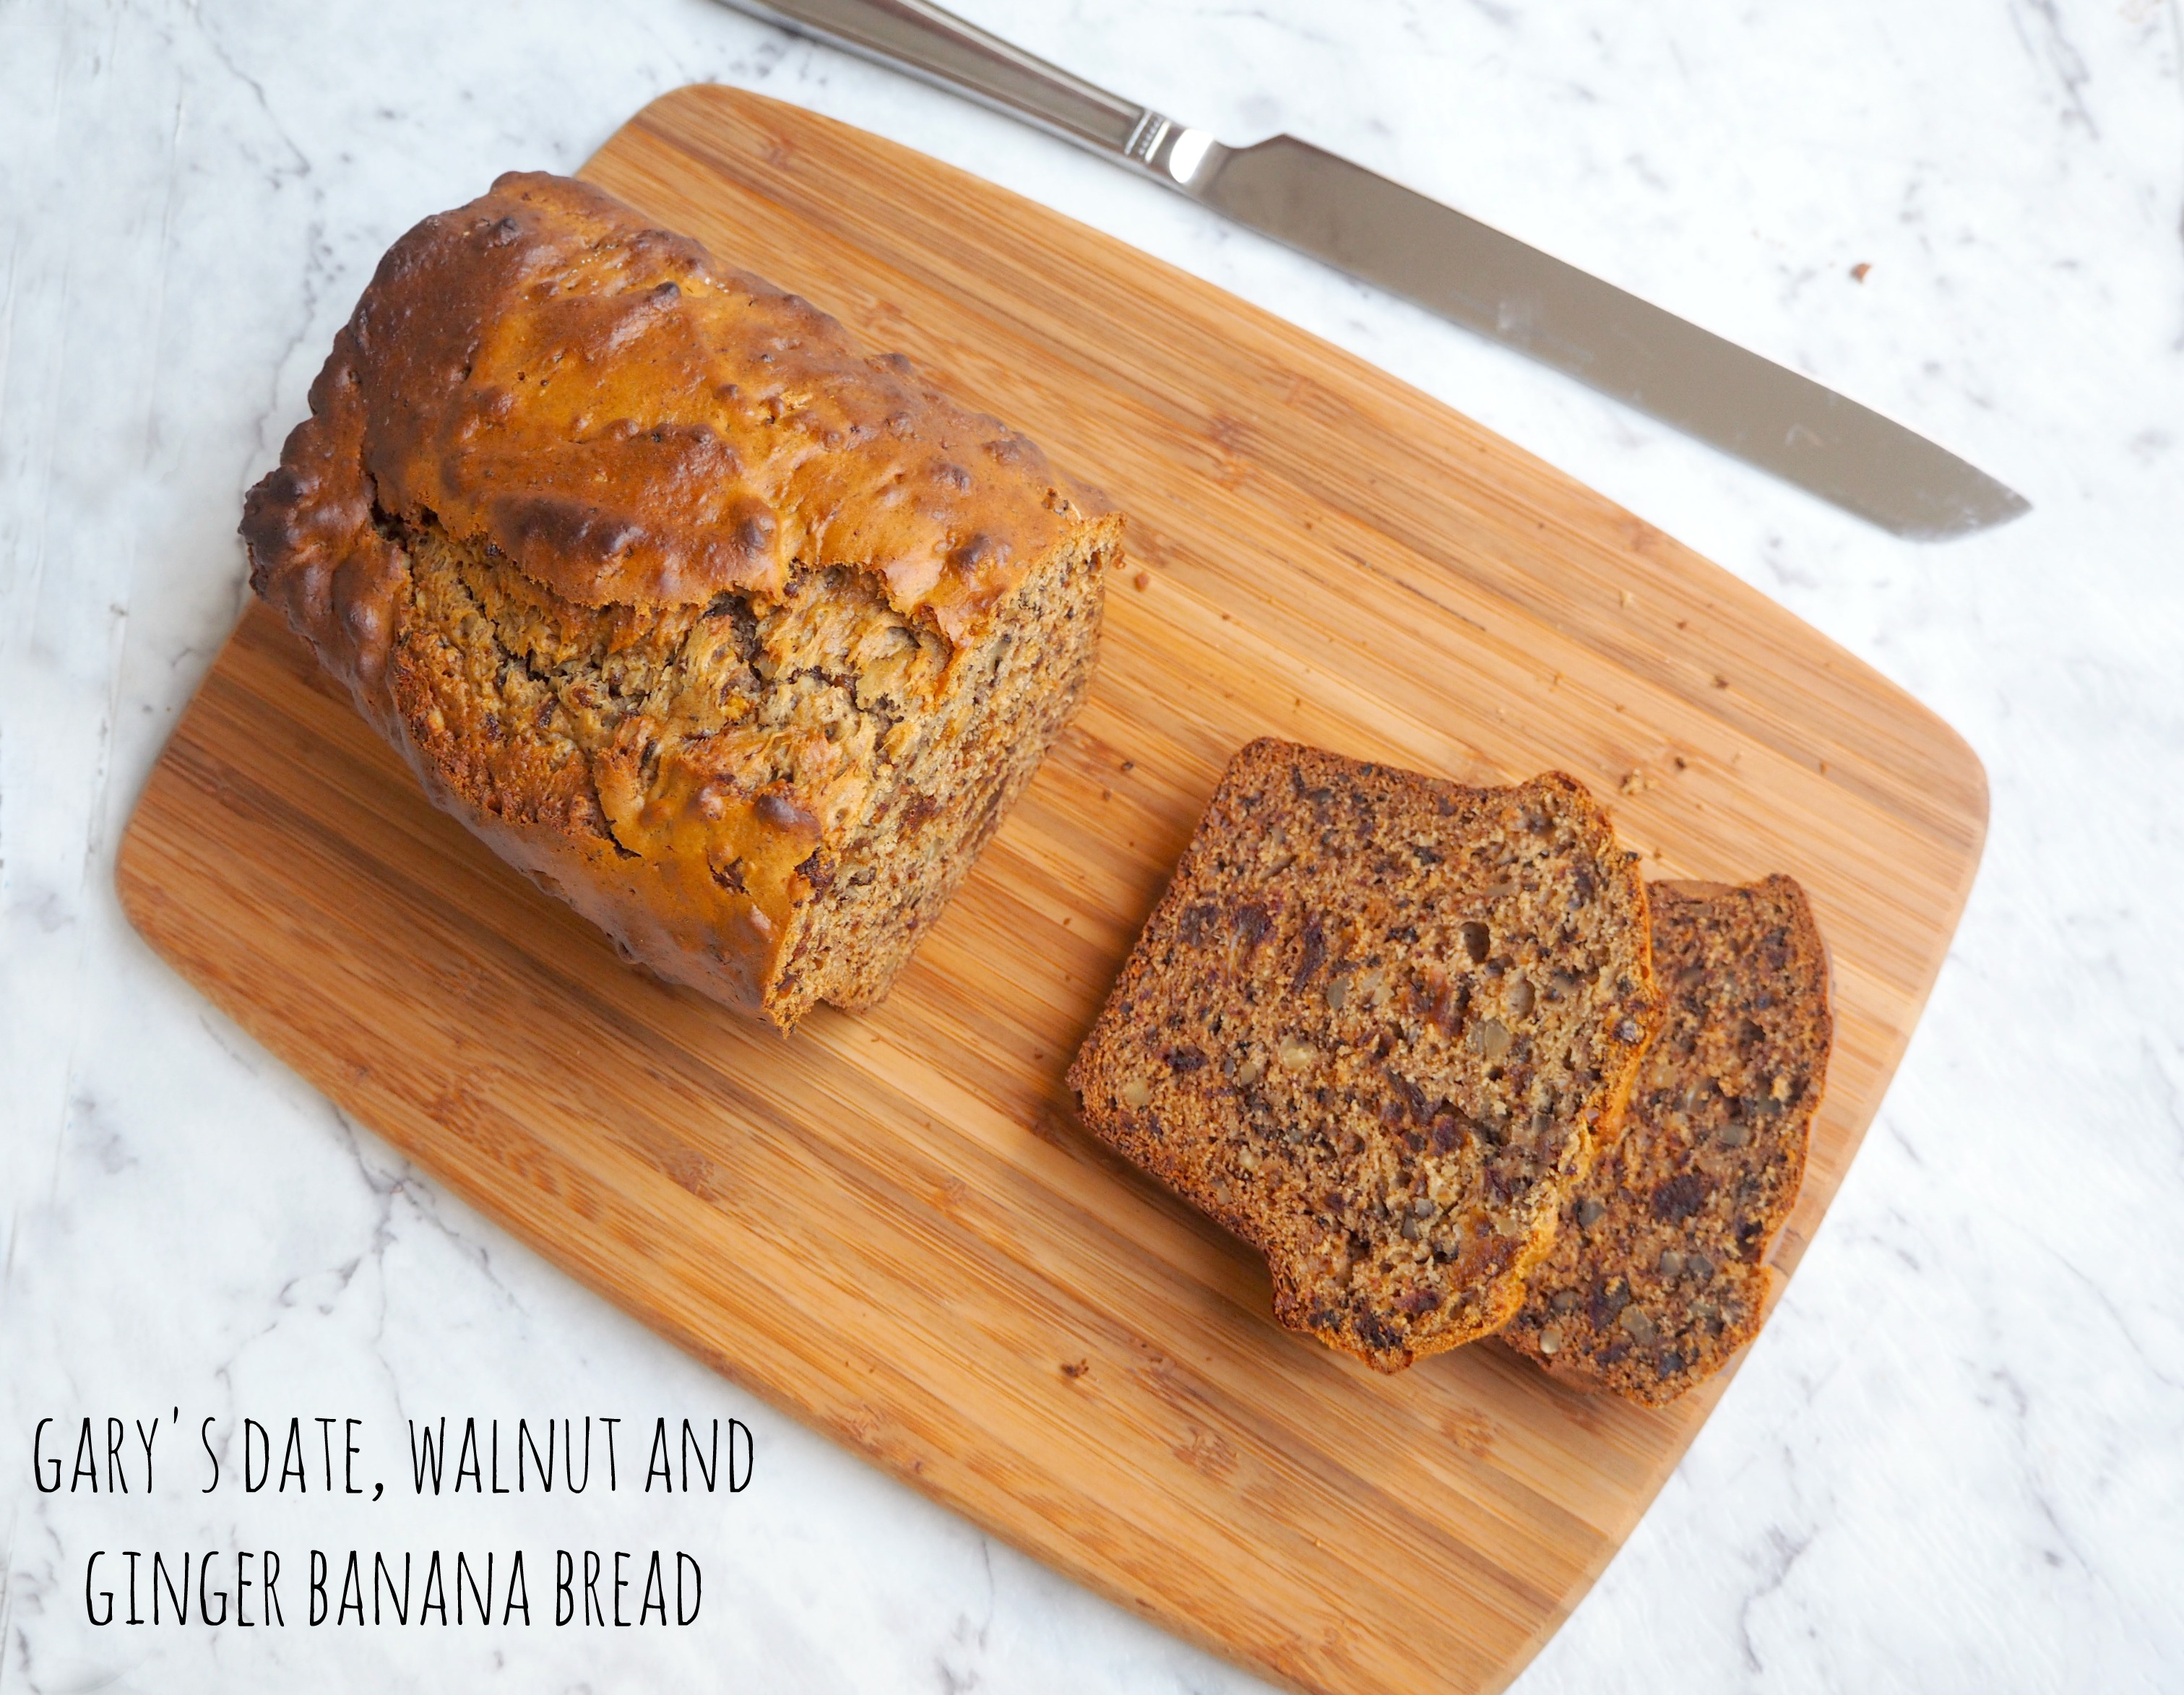 Gary's Date, Walnut and Ginger Banana Bread